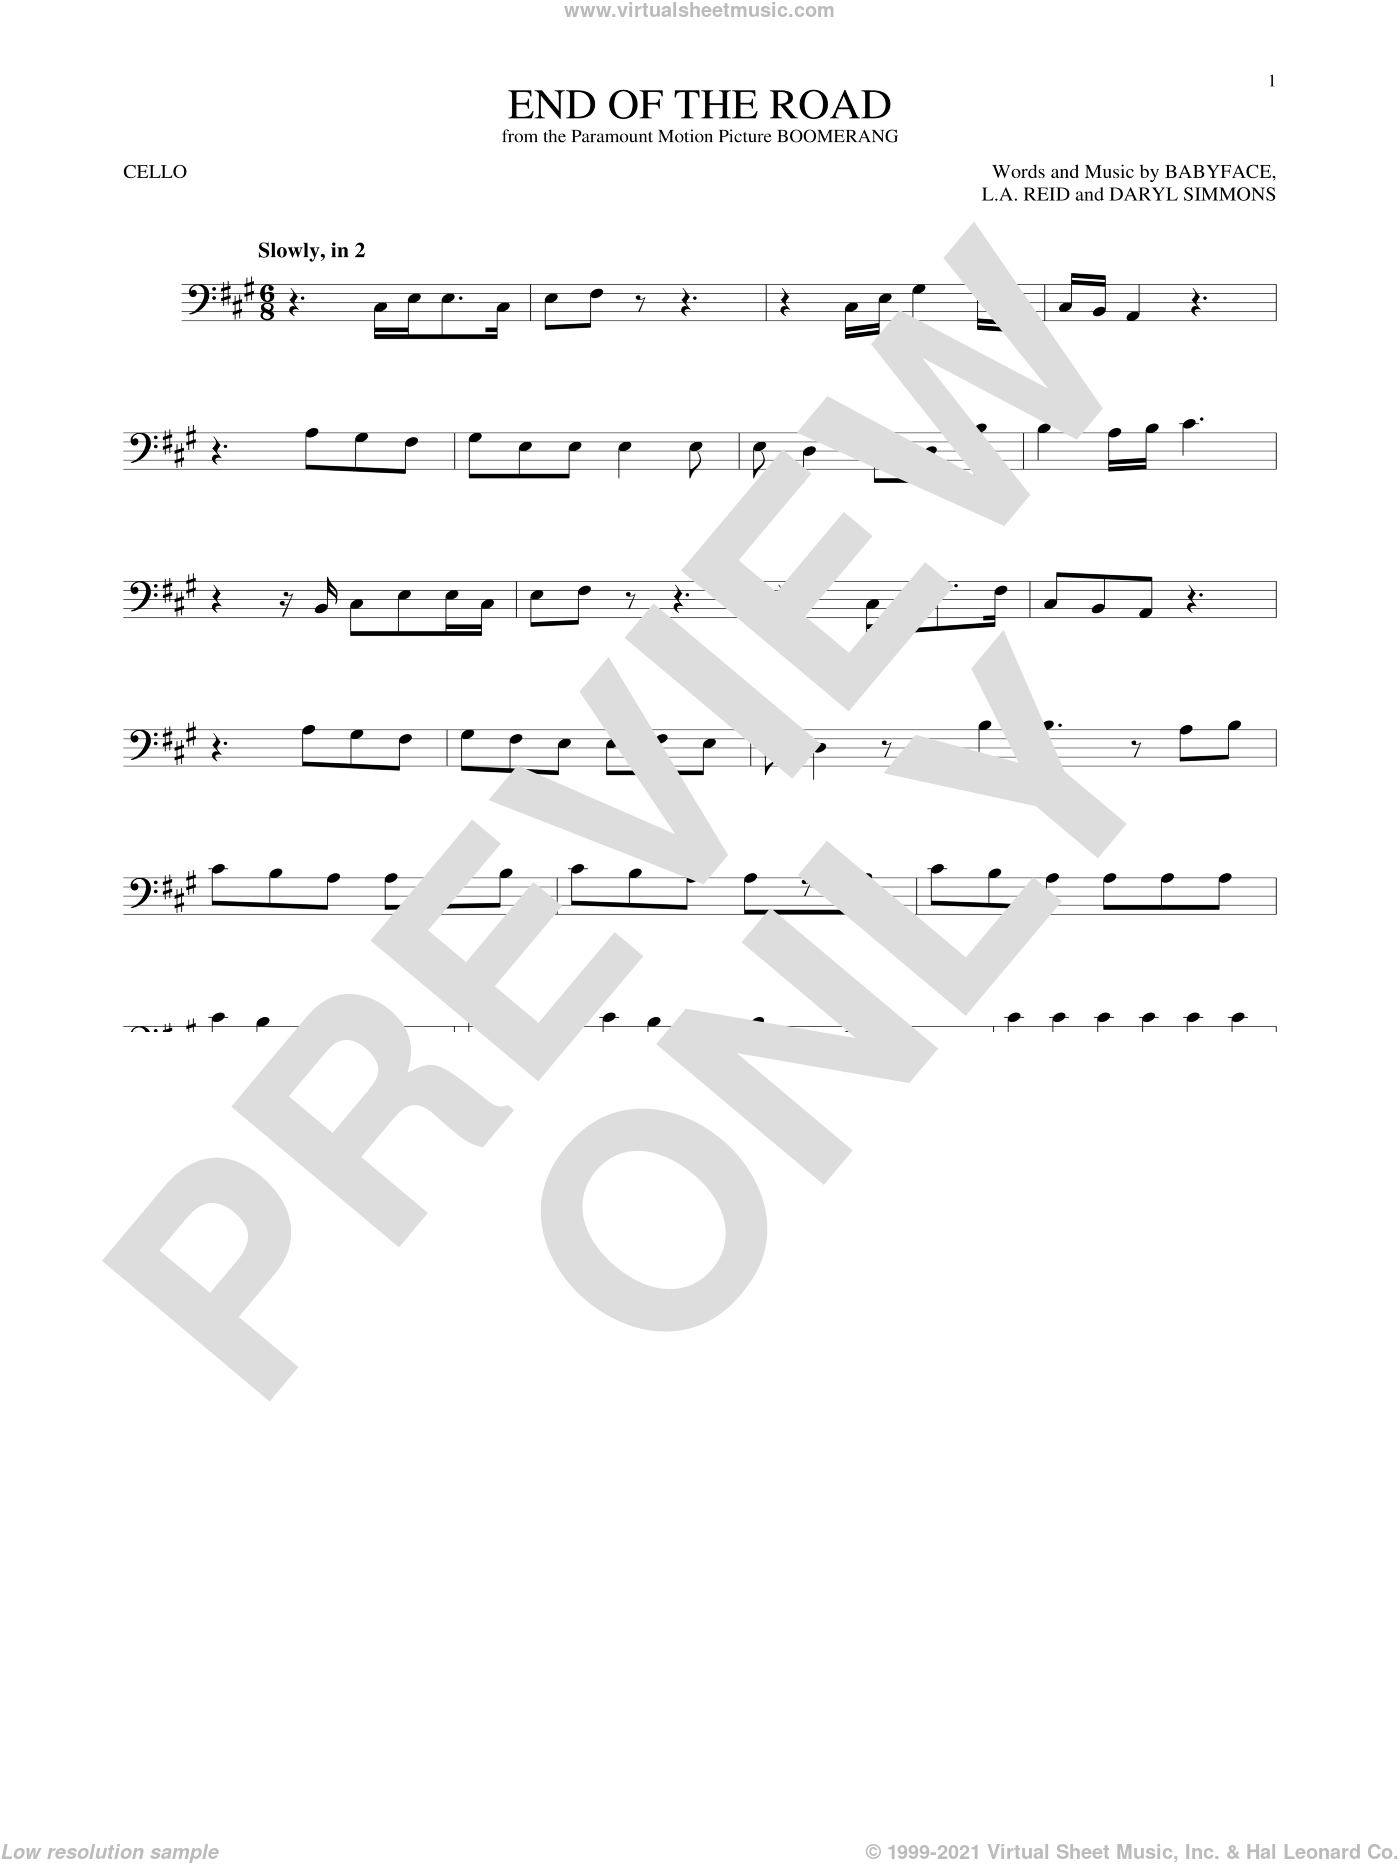 End Of The Road sheet music for cello solo by Boyz II Men, Babyface, Daryl Simmons and L.A. Reid, intermediate skill level